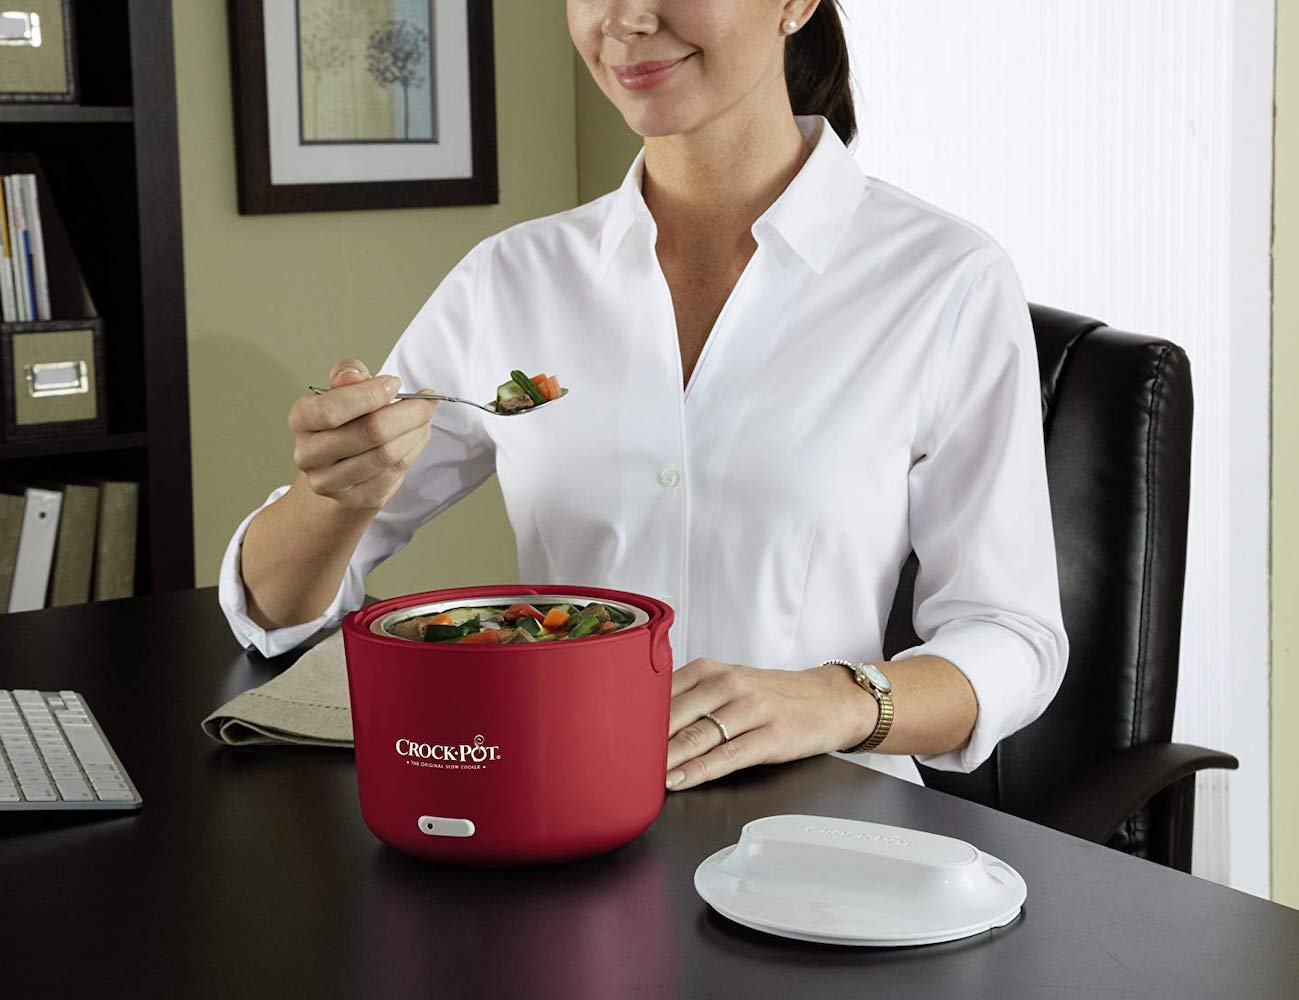 Crock-Pot Lunch Crock Portable Food Warmer keeps your lunch hot for hours